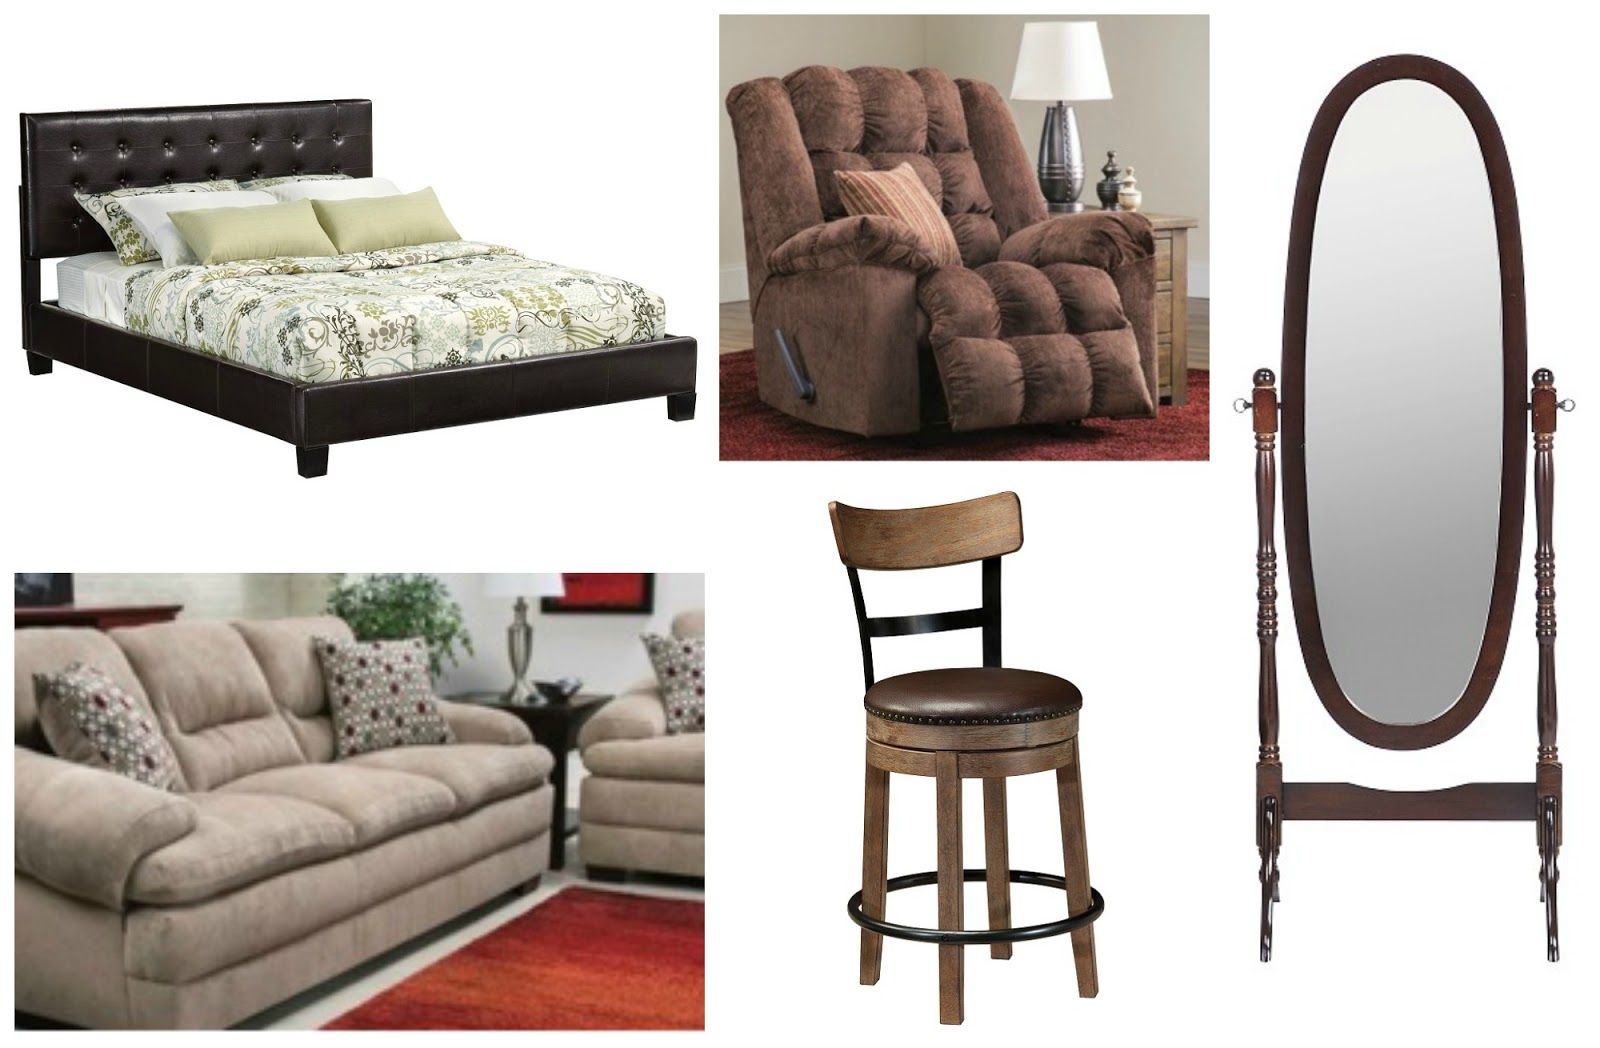 Genial Furniture Stores In Belton On YP.com. Belton, MO Furniture Stores. We  Usually Shop Another Furinture Store But Descided To Try Furinture Deals  And W.